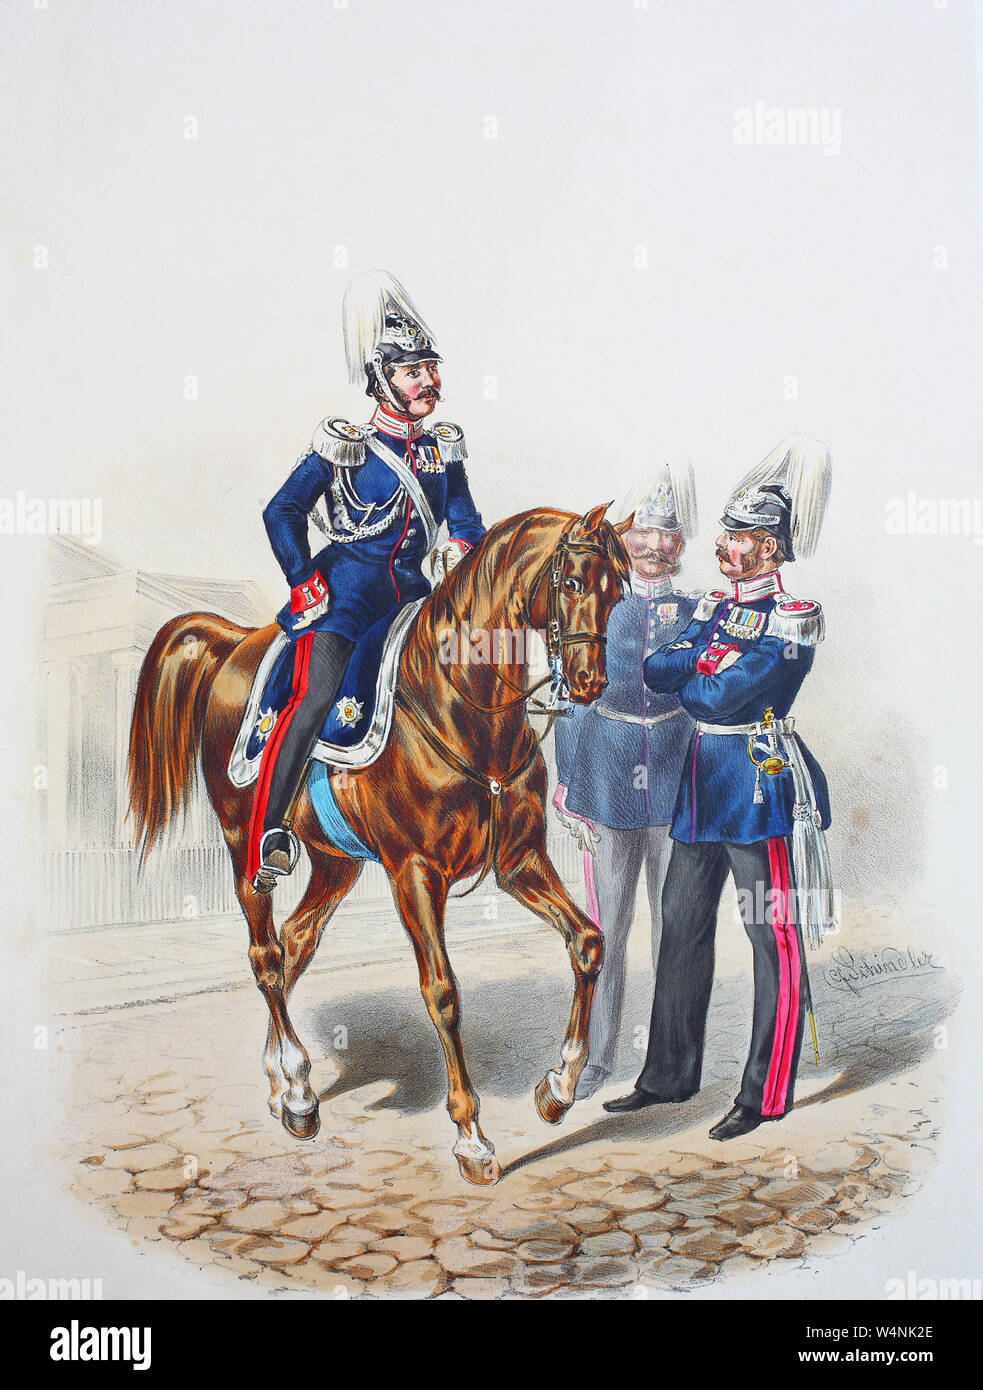 Royal Prussian Army, Guards Corps, Preußens Heer, preussische Garde, Flügel-Adjutant und Generalstabs-Offizier, Digital improved reproduction of an illustration from the 19th century Stock Photo